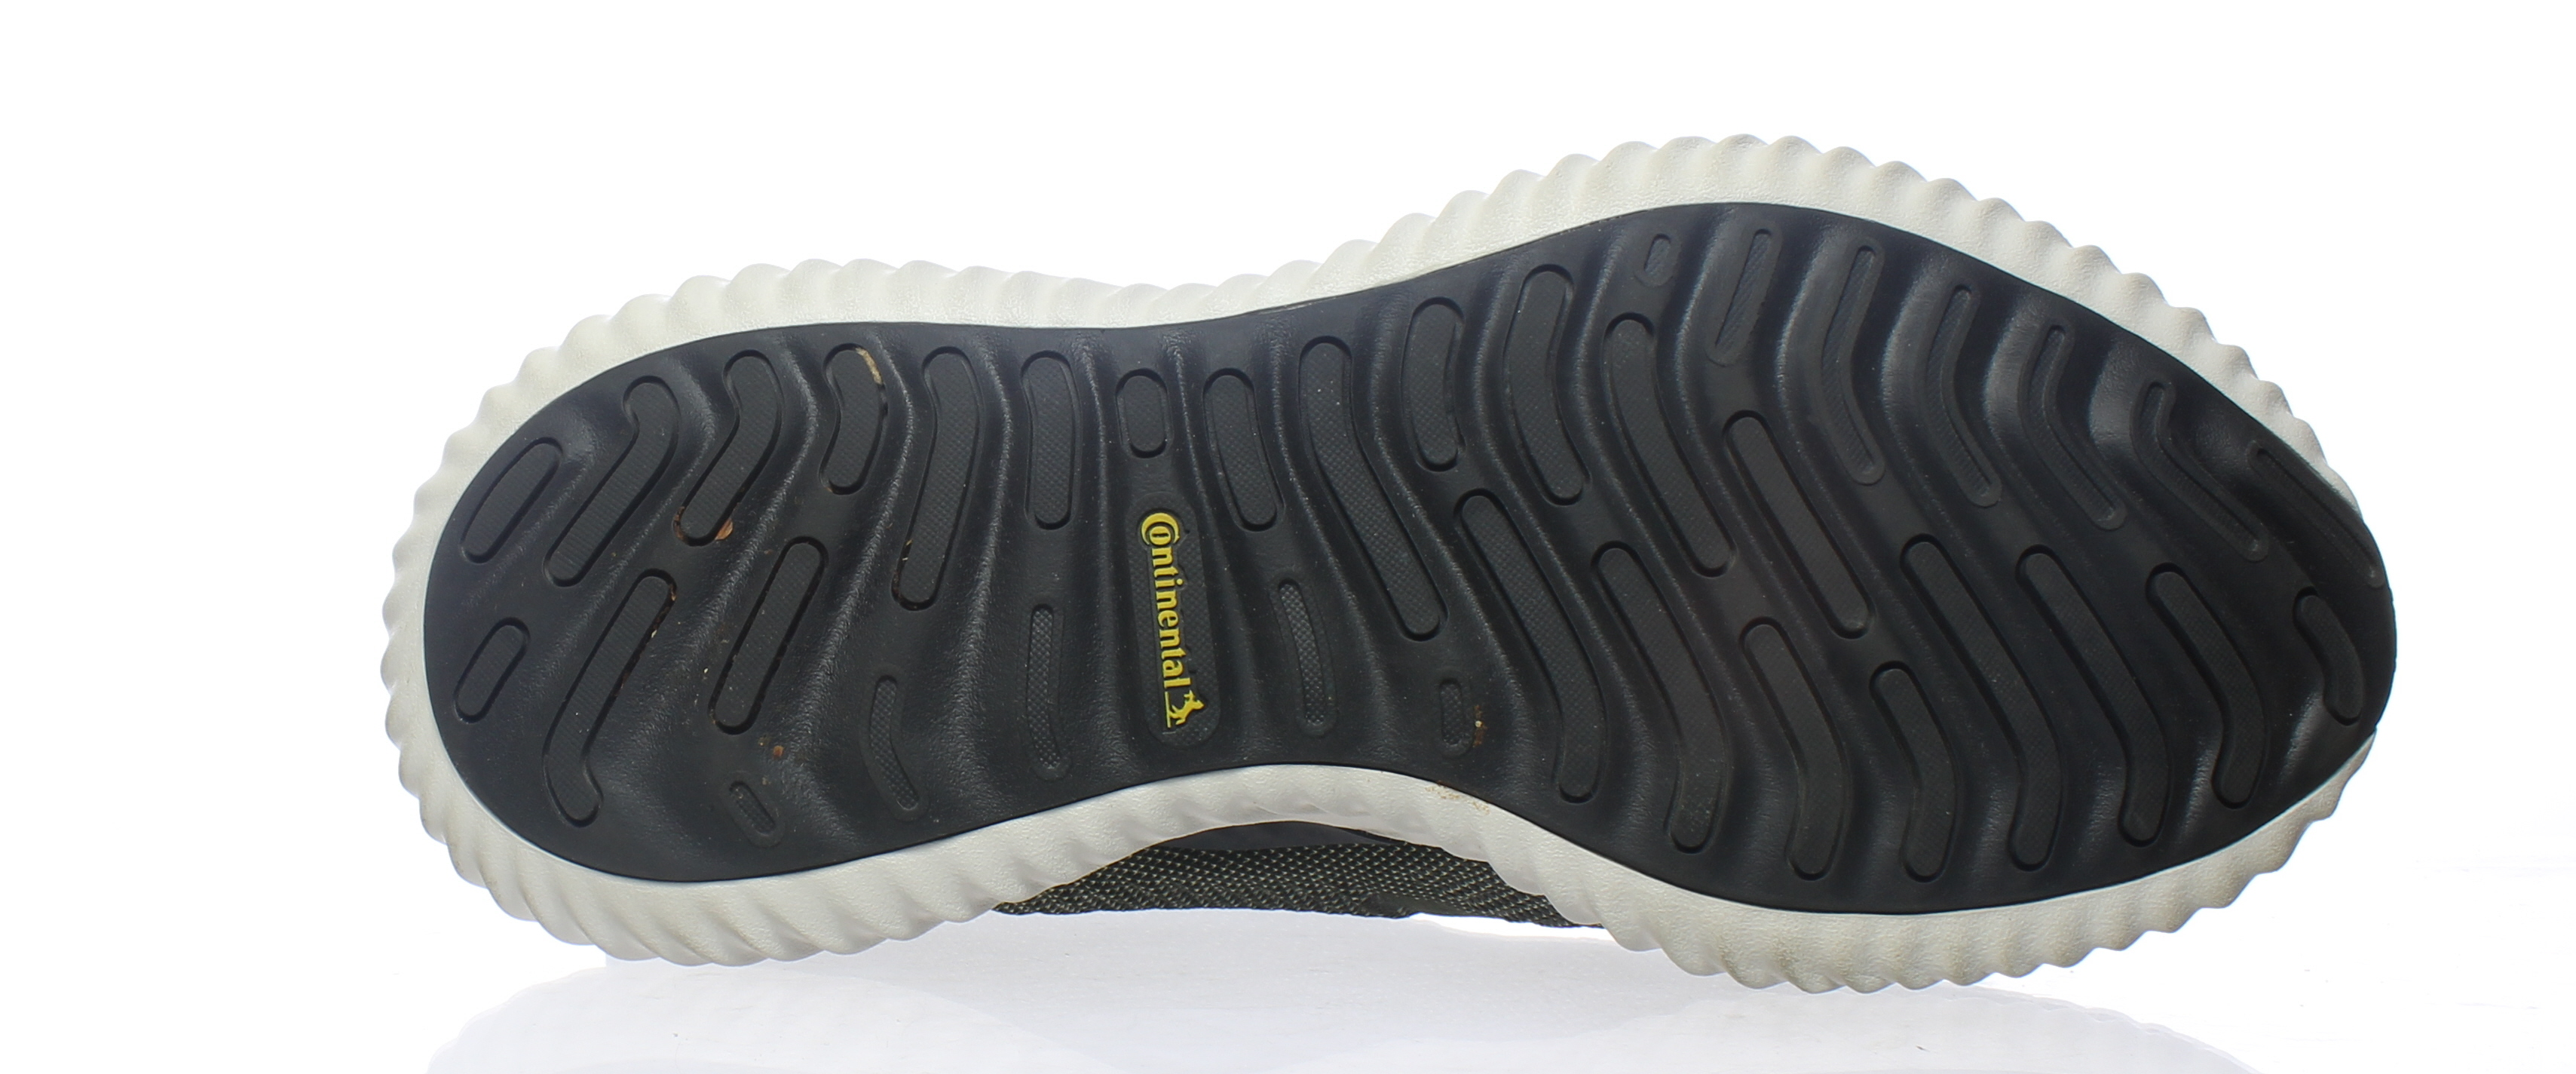 3d4fa3bac Adidas Mens Alphabounce Beyond Green Running Shoes Size 10 (266435 ...